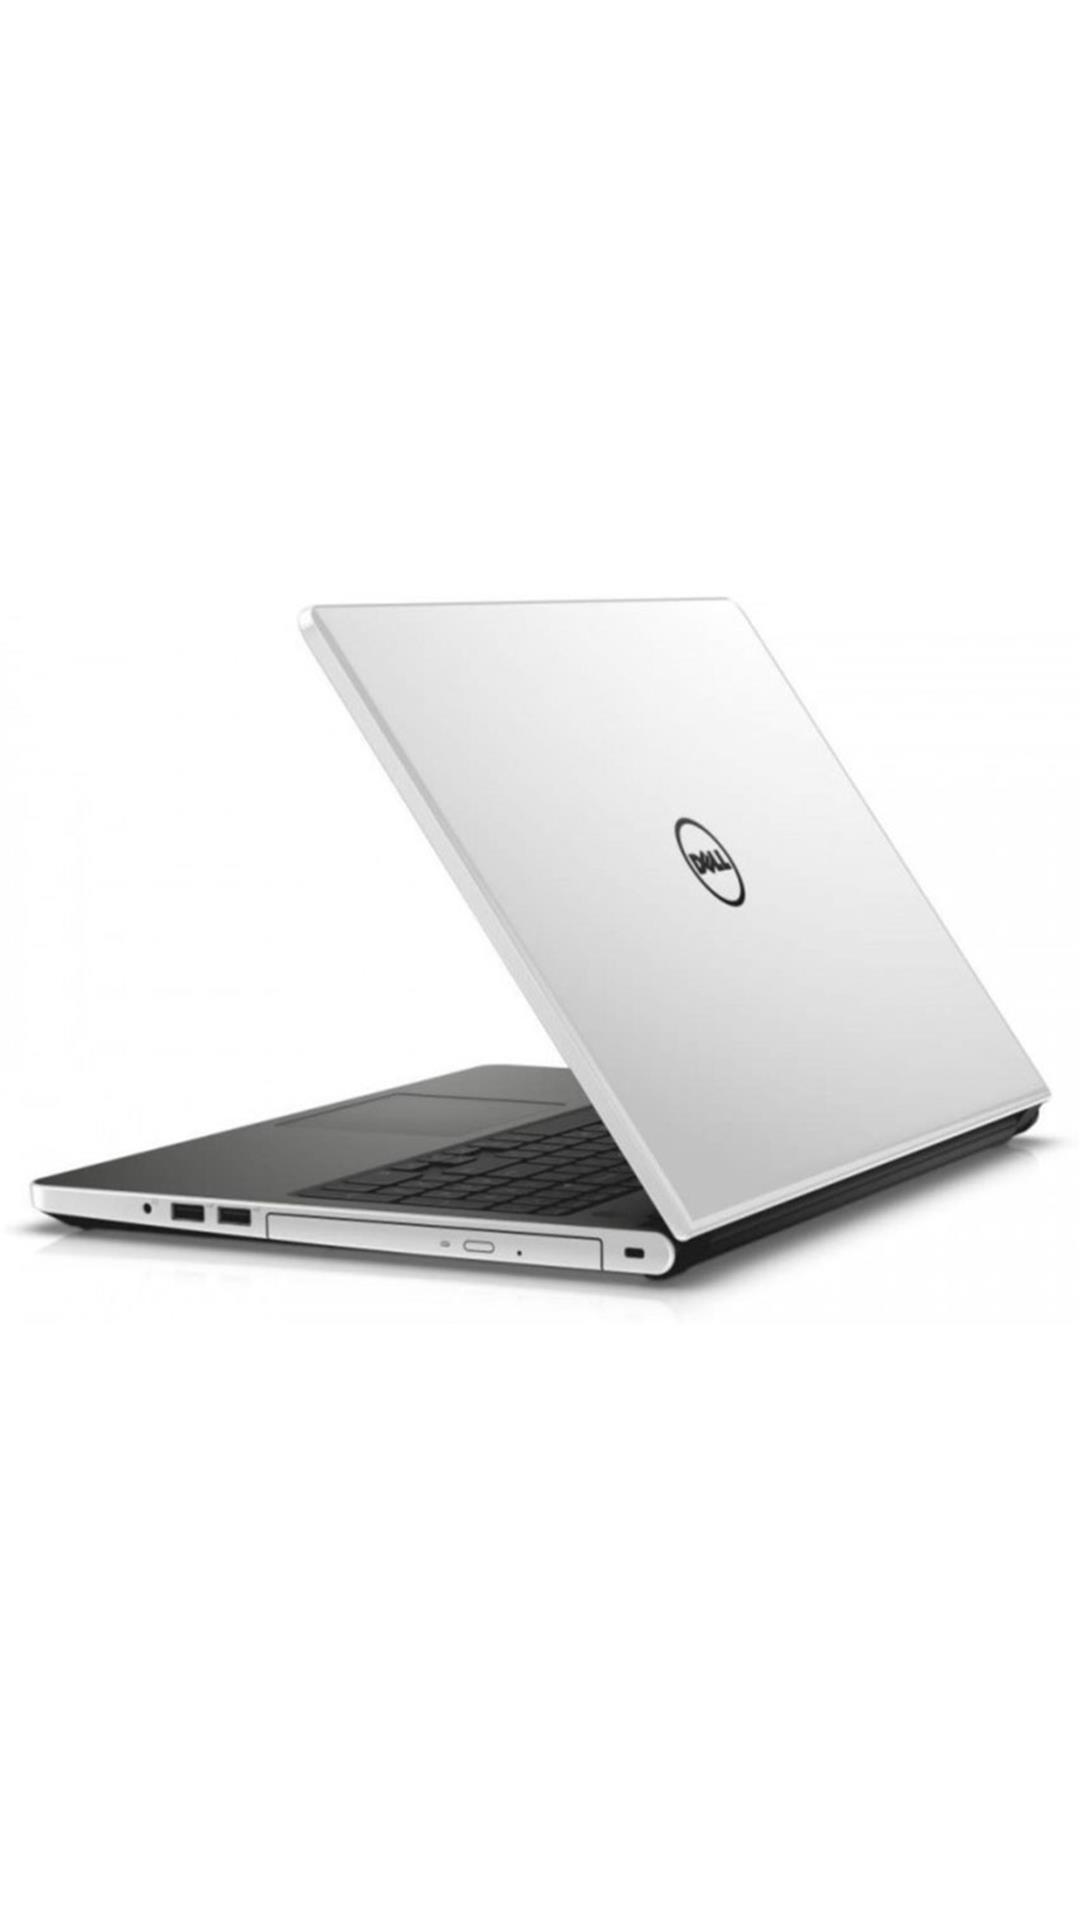 Dell Inspiron 5559 (Y566509HIN9WG)(Core i5 (6th Gen)/8 GB/1 TB/39.62 cm (15.6)/Windows 10)(White)